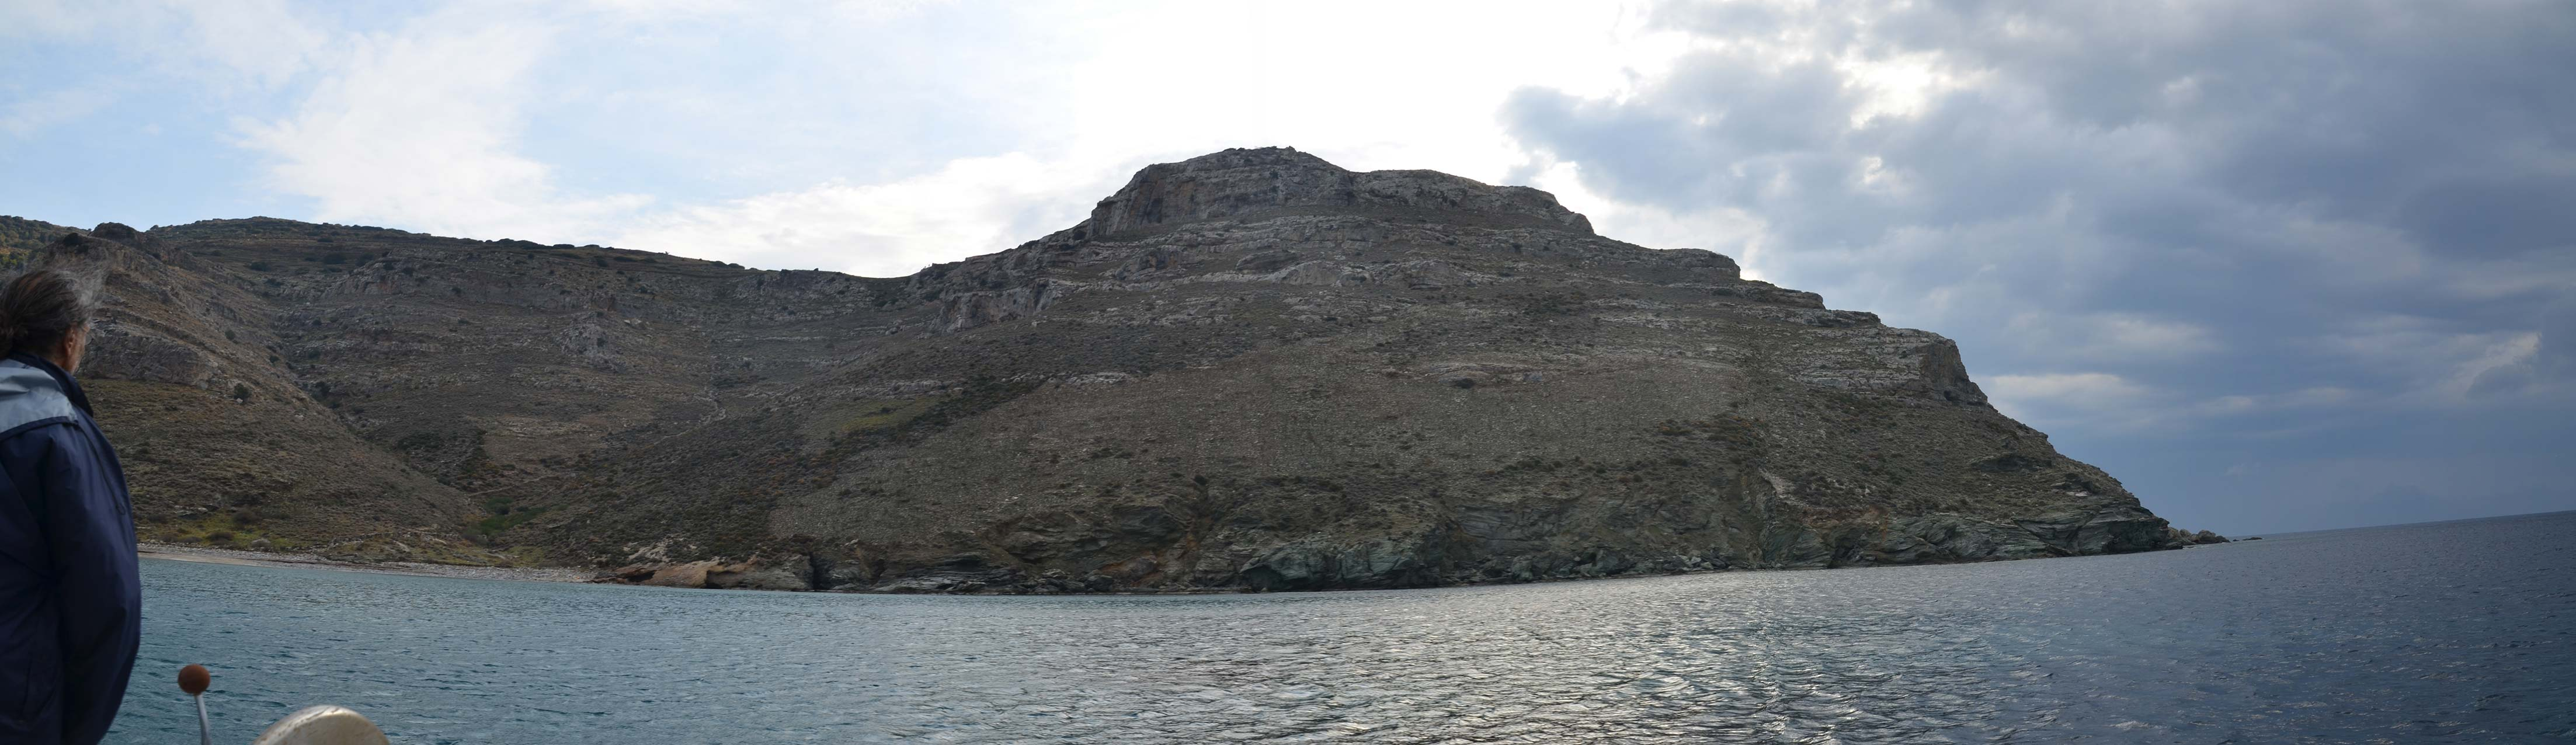 Panorama of the north face of Zagora